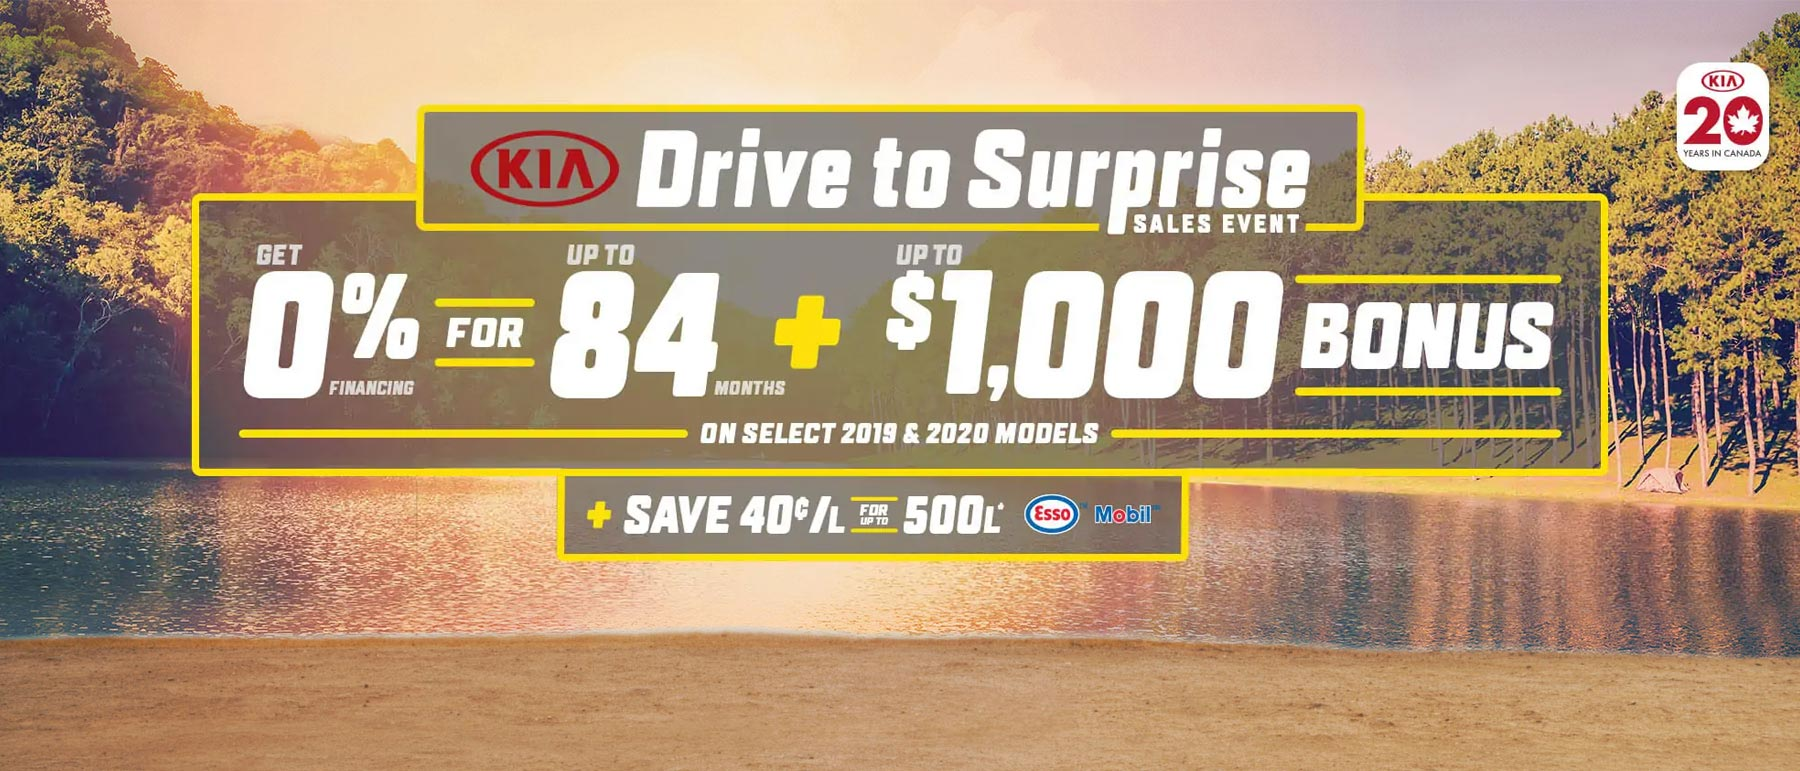 Kia July 2019 Incentive Offer